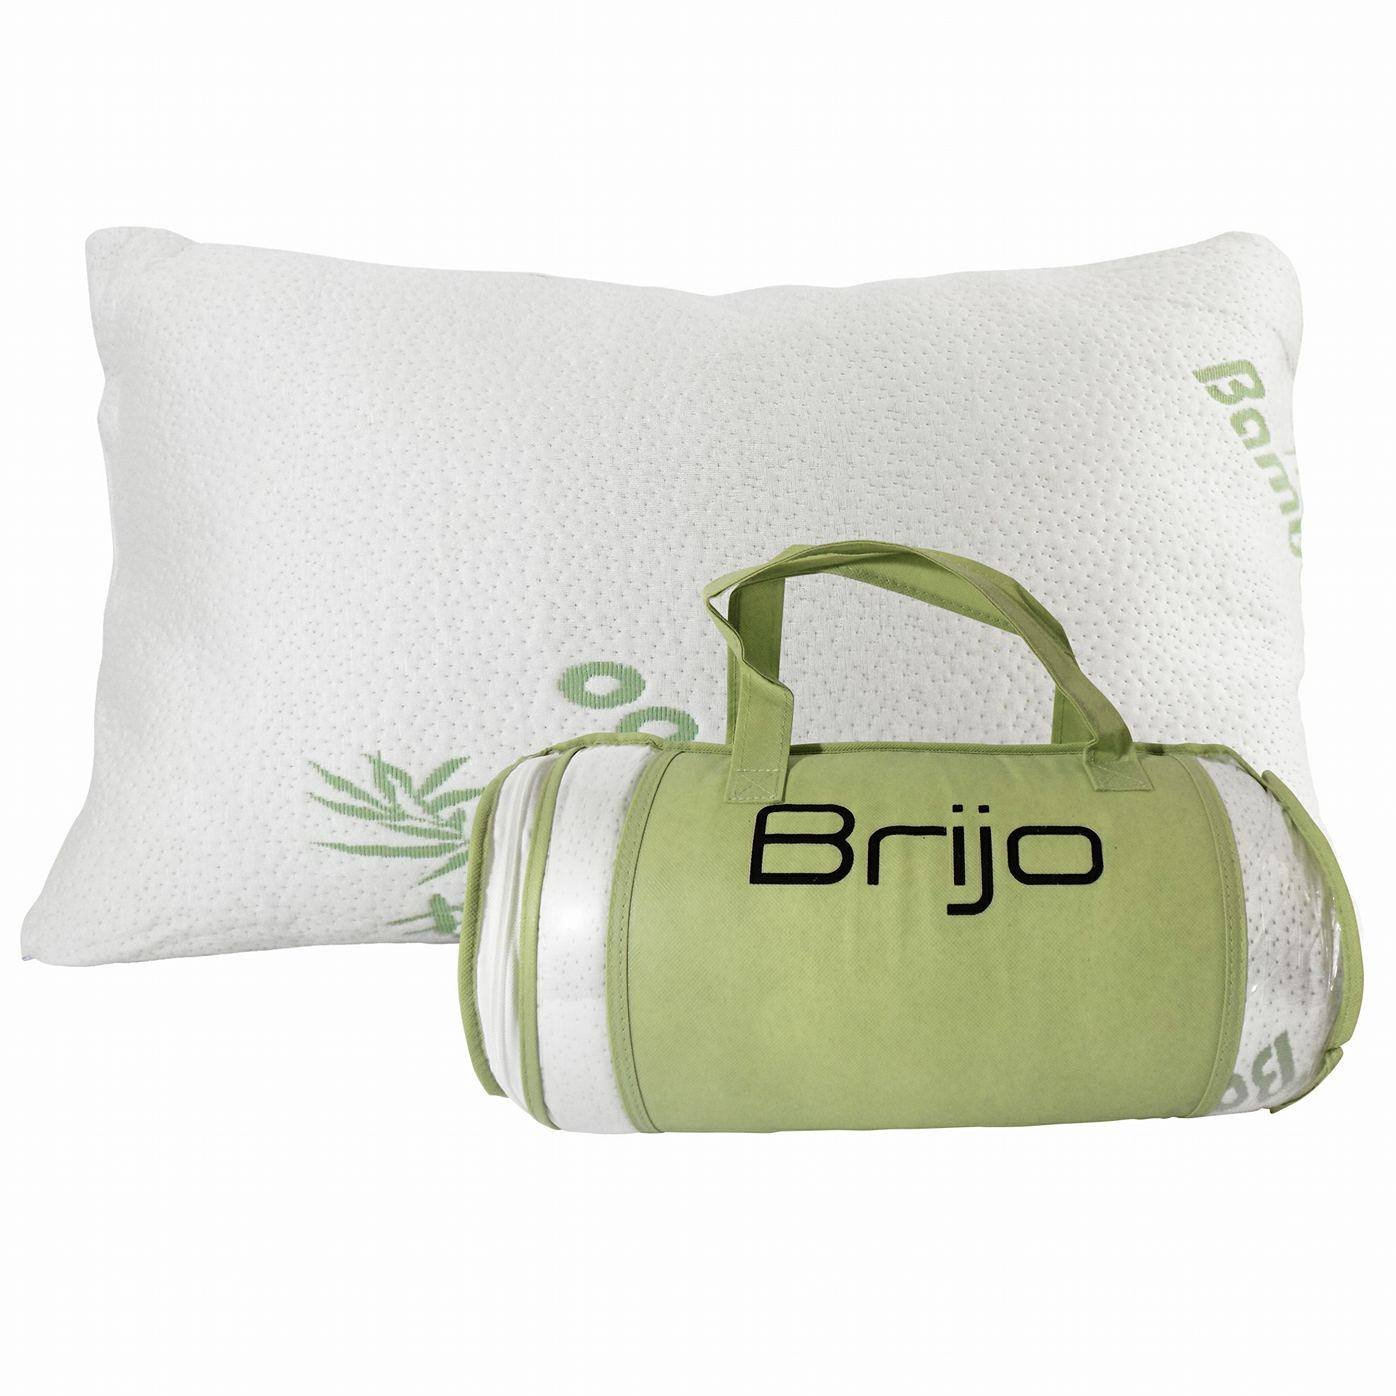 Bamboo Shredded Memory Foam Pillow- Reduce or Eliminate Neck, Back and Shoulder Pain